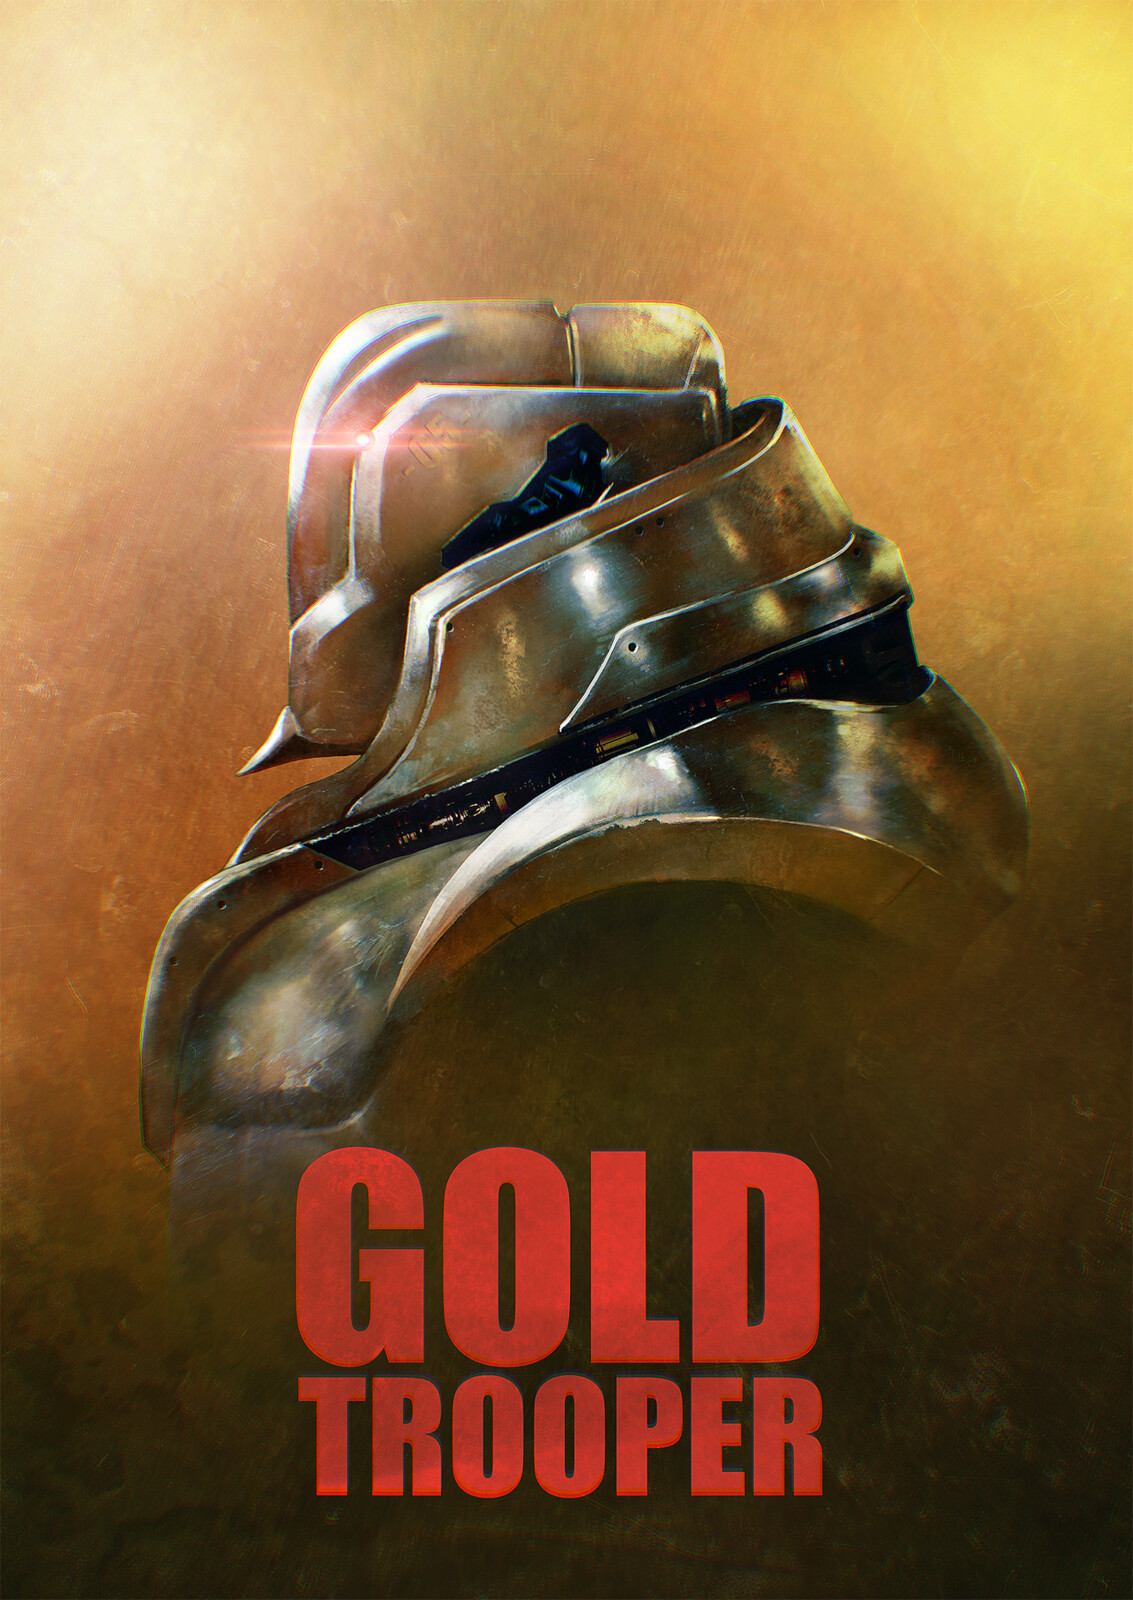 GOLD TROOPER